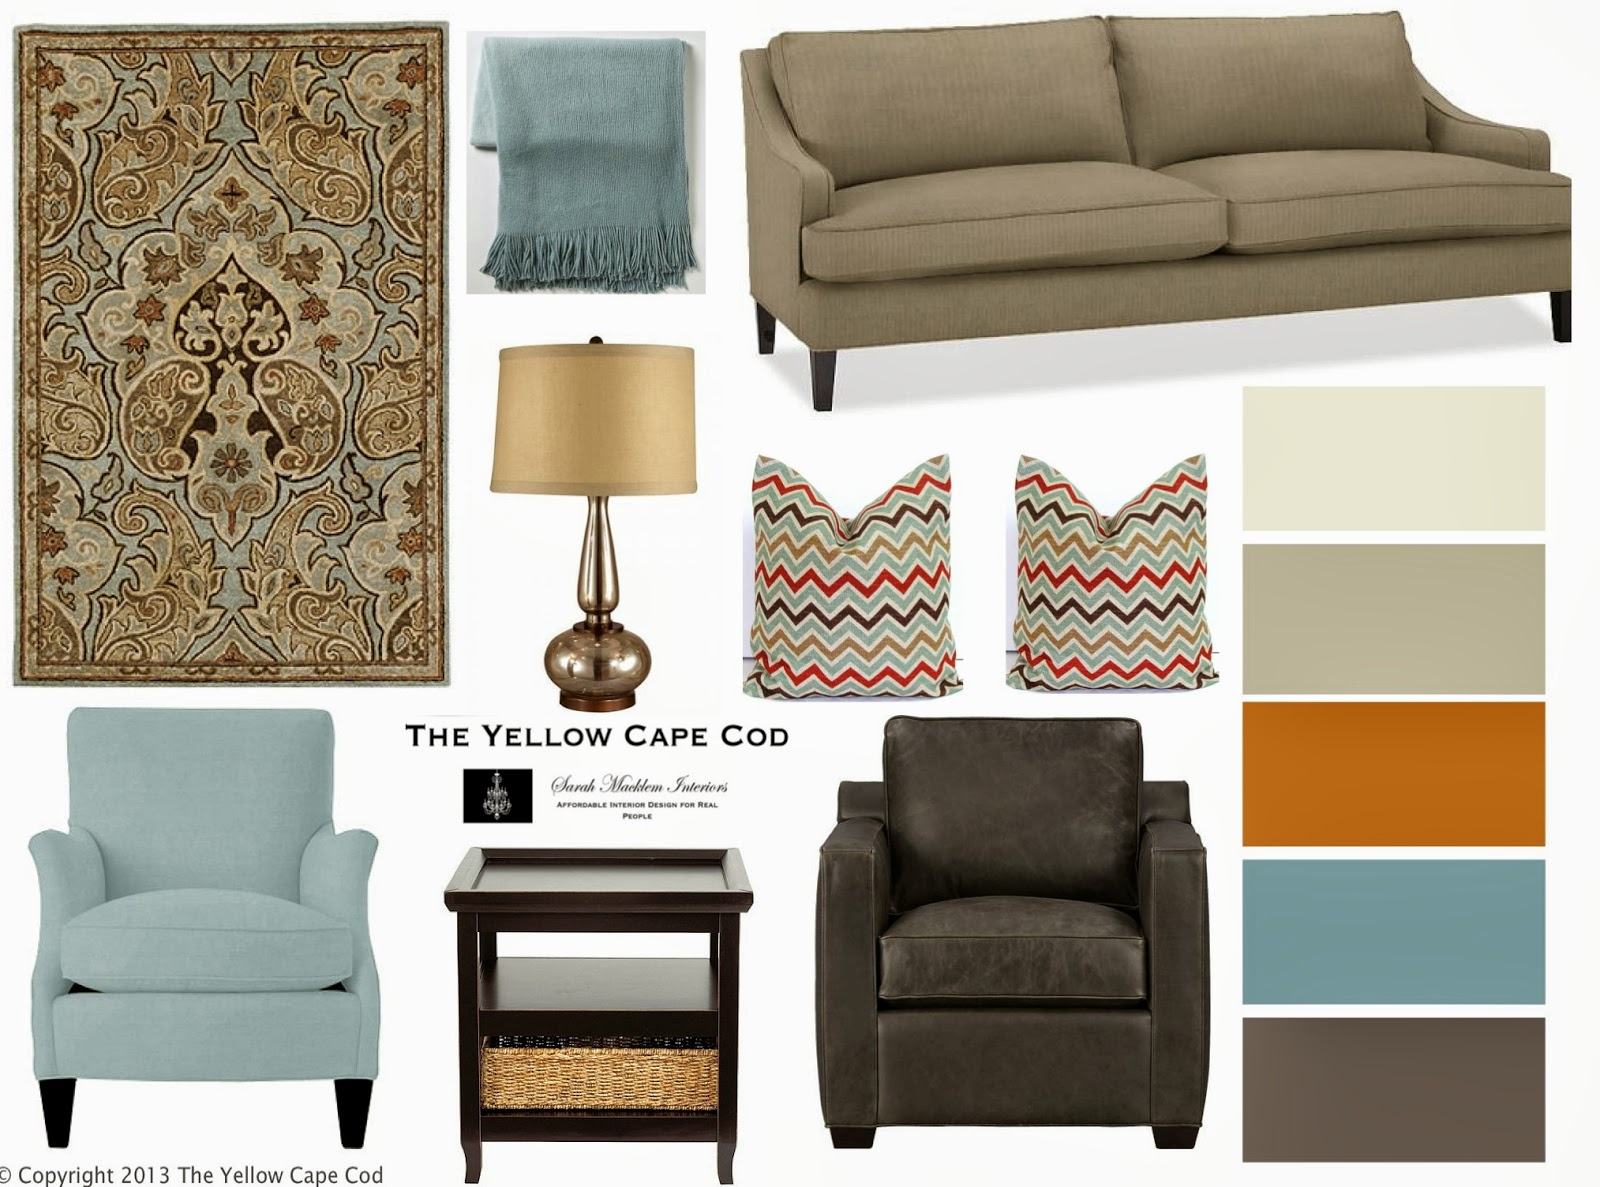 the yellow cape cod his and her chairs how to mix. Black Bedroom Furniture Sets. Home Design Ideas